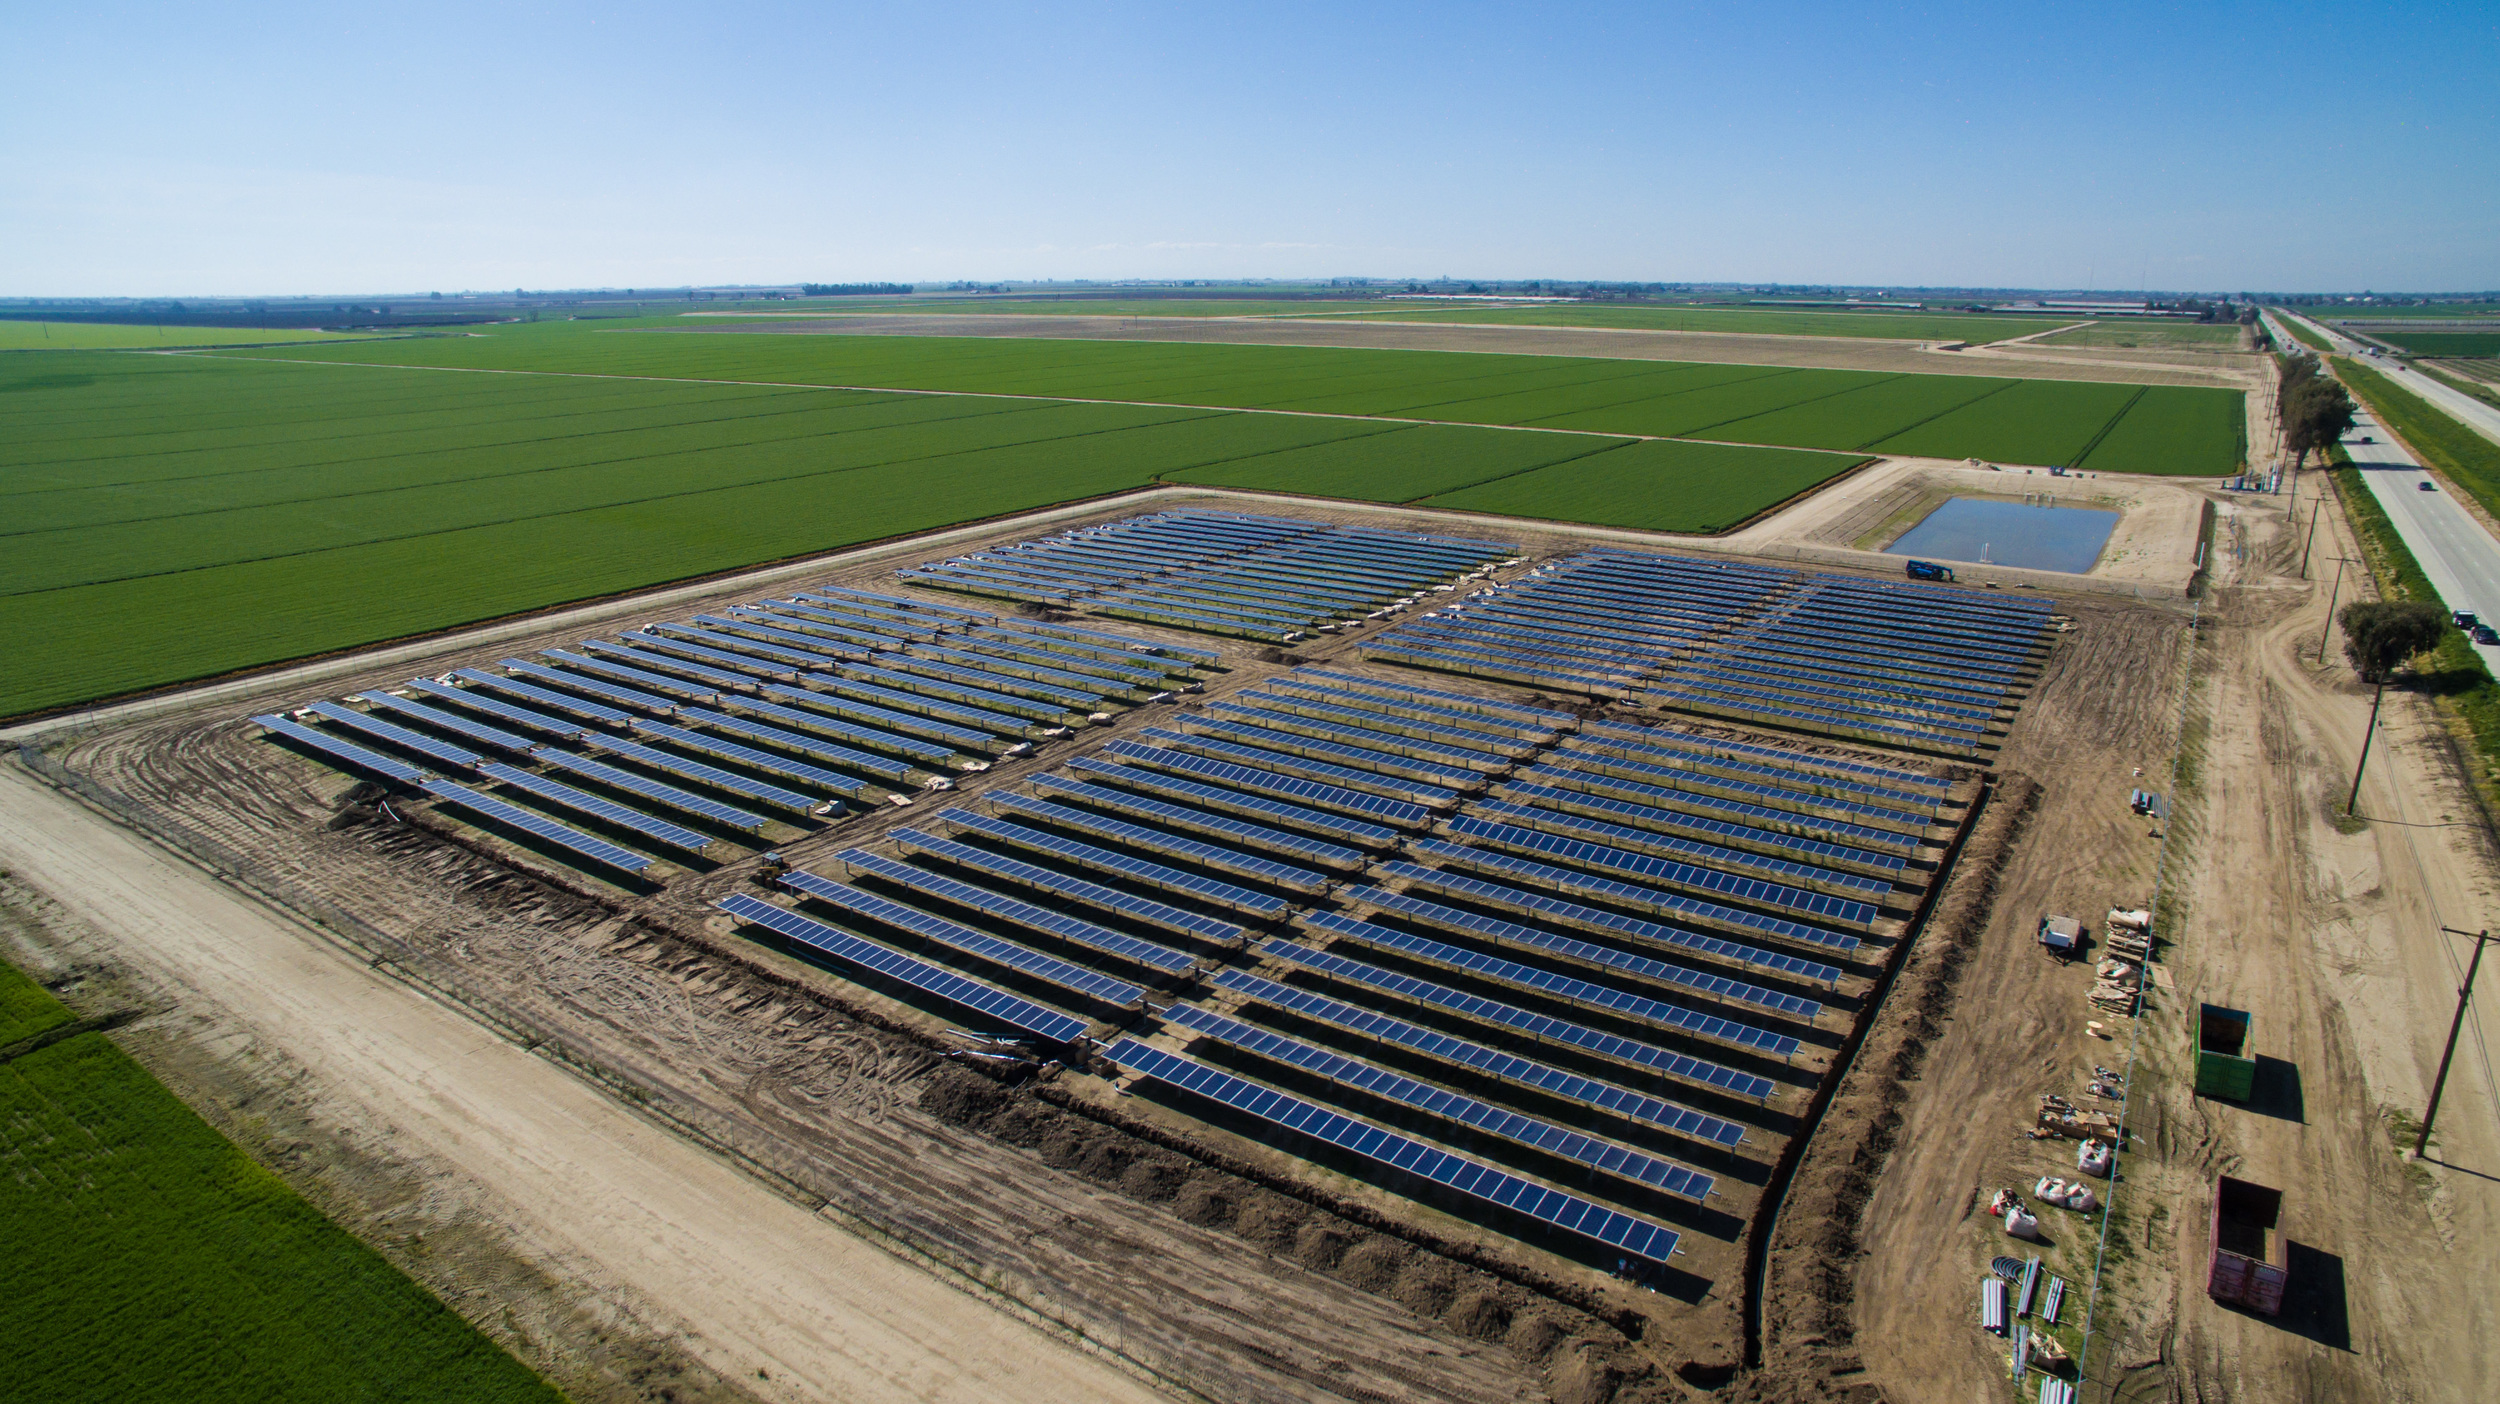 DeJong Dairy Pacific Solar Fresno during Installation